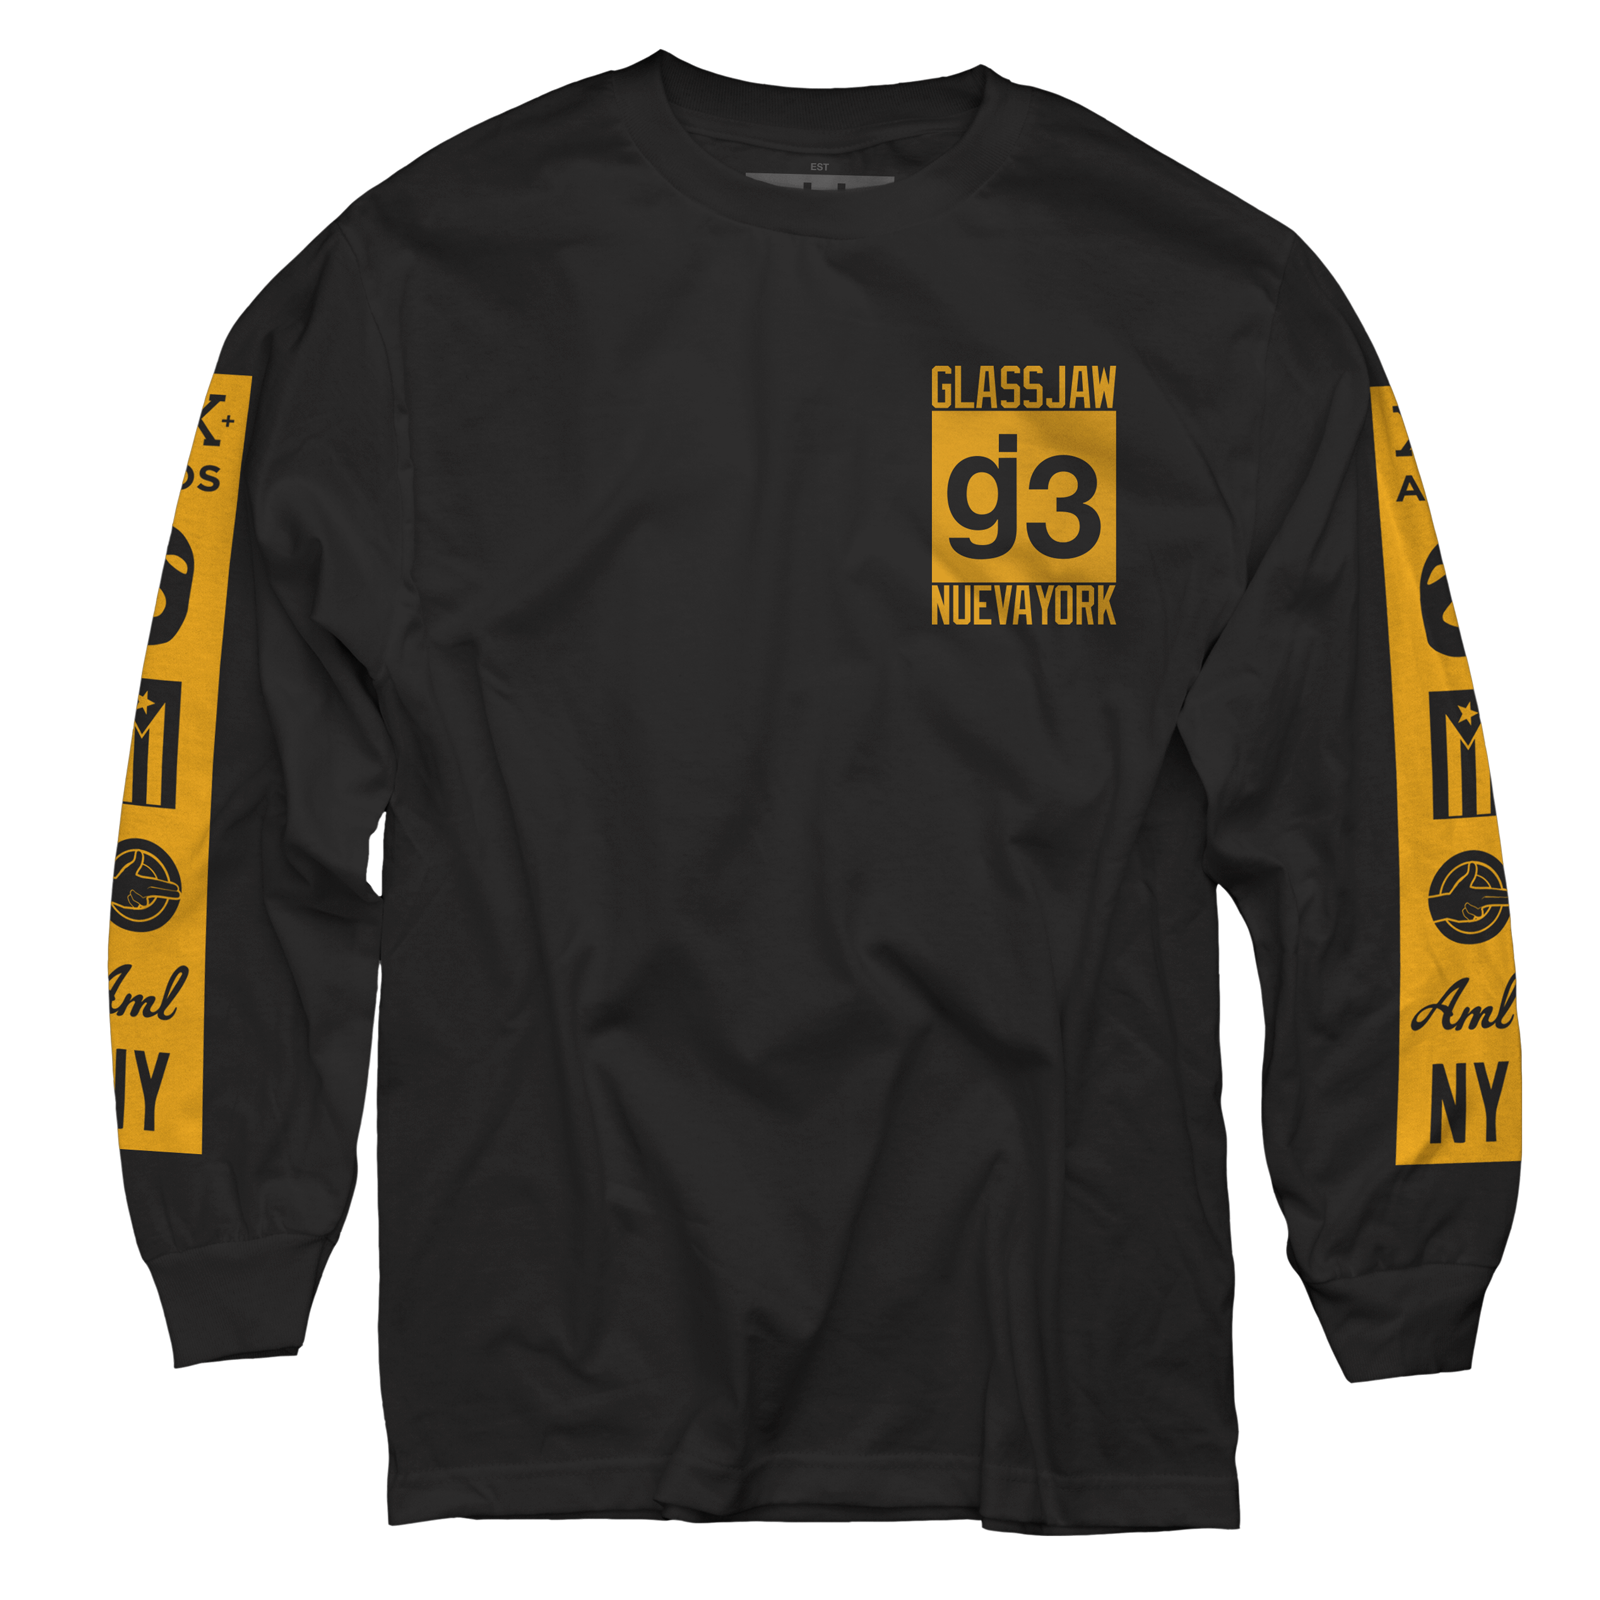 KKBB black gold mas logos long sleeve t-shirt